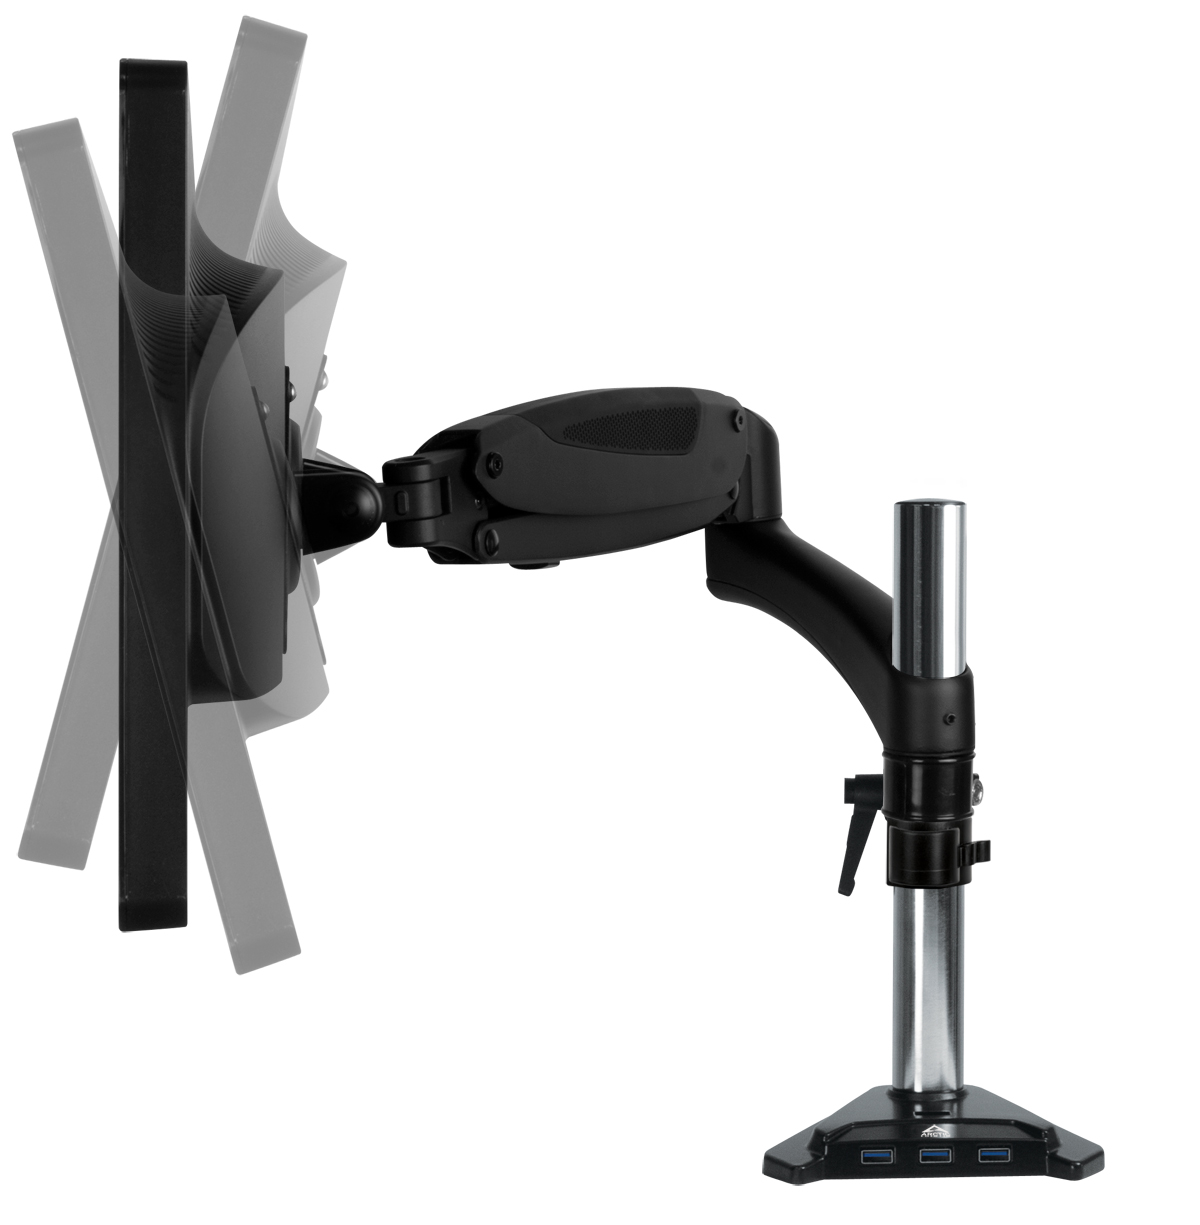 Desk Mount Gas Spring Monitor Arm ARCTIC Z1-3D (Gen 3) Tiltable